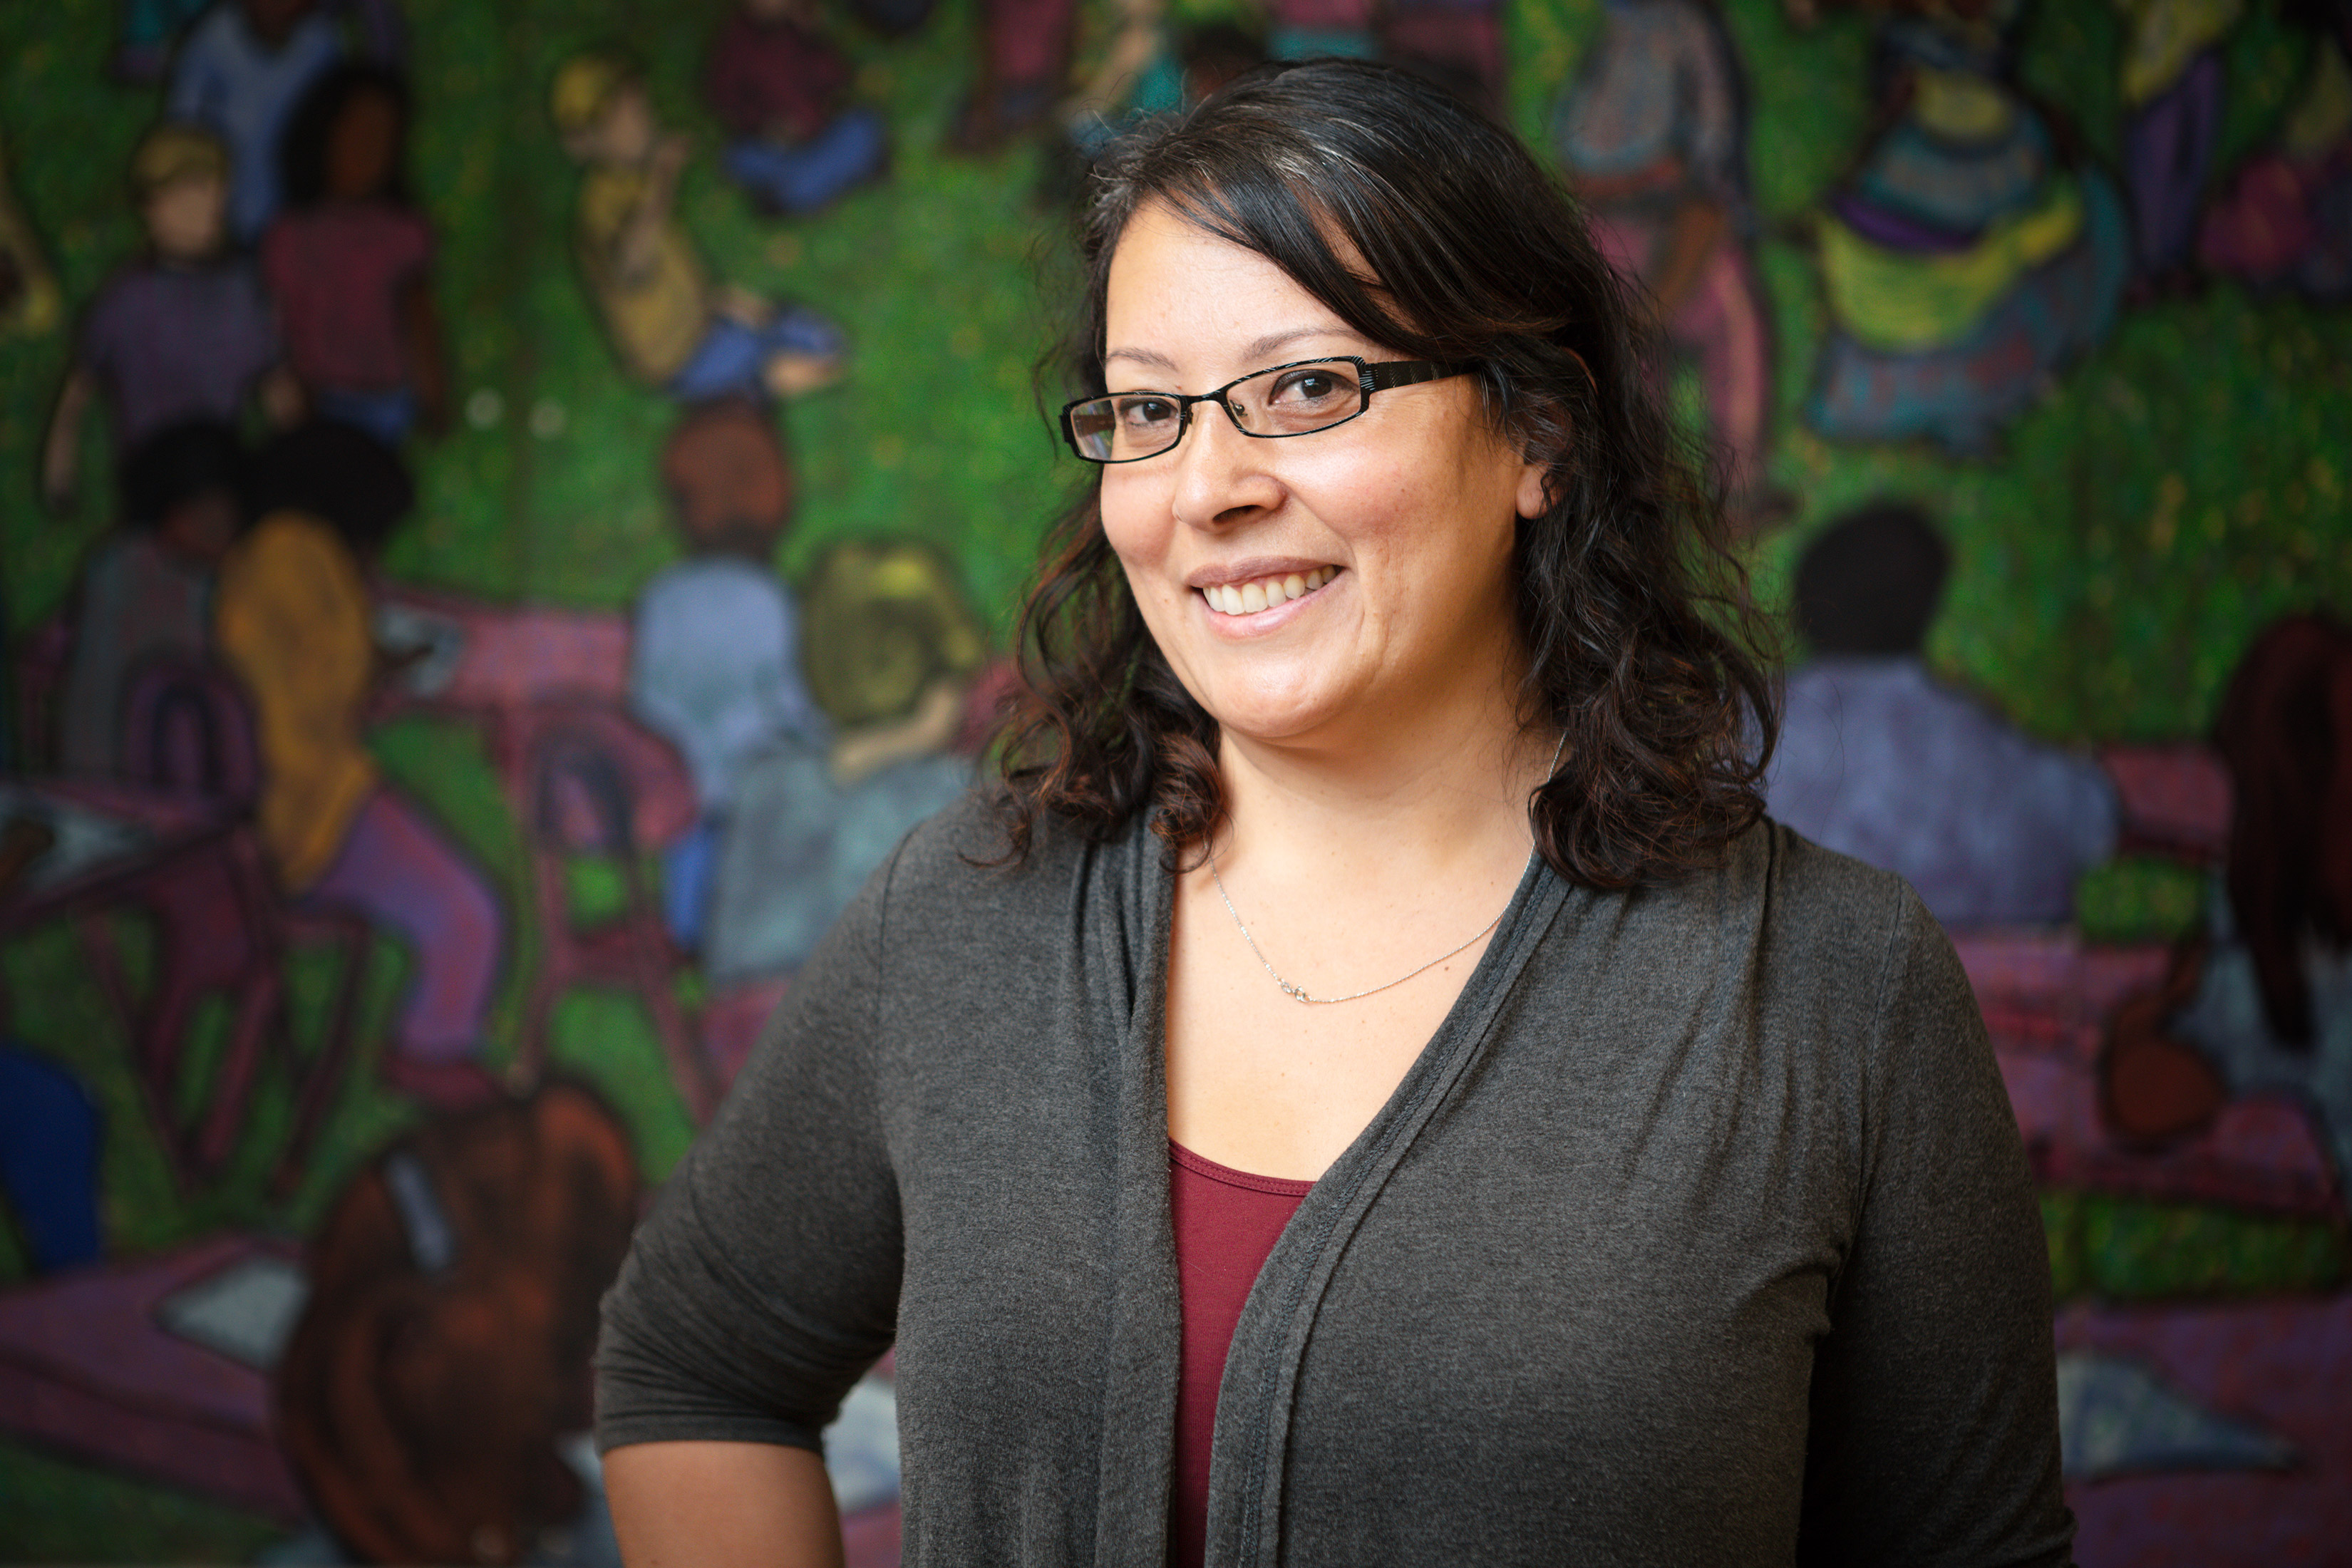 A Denver teacher poses for a portrait in front of a mural at a Denver public school